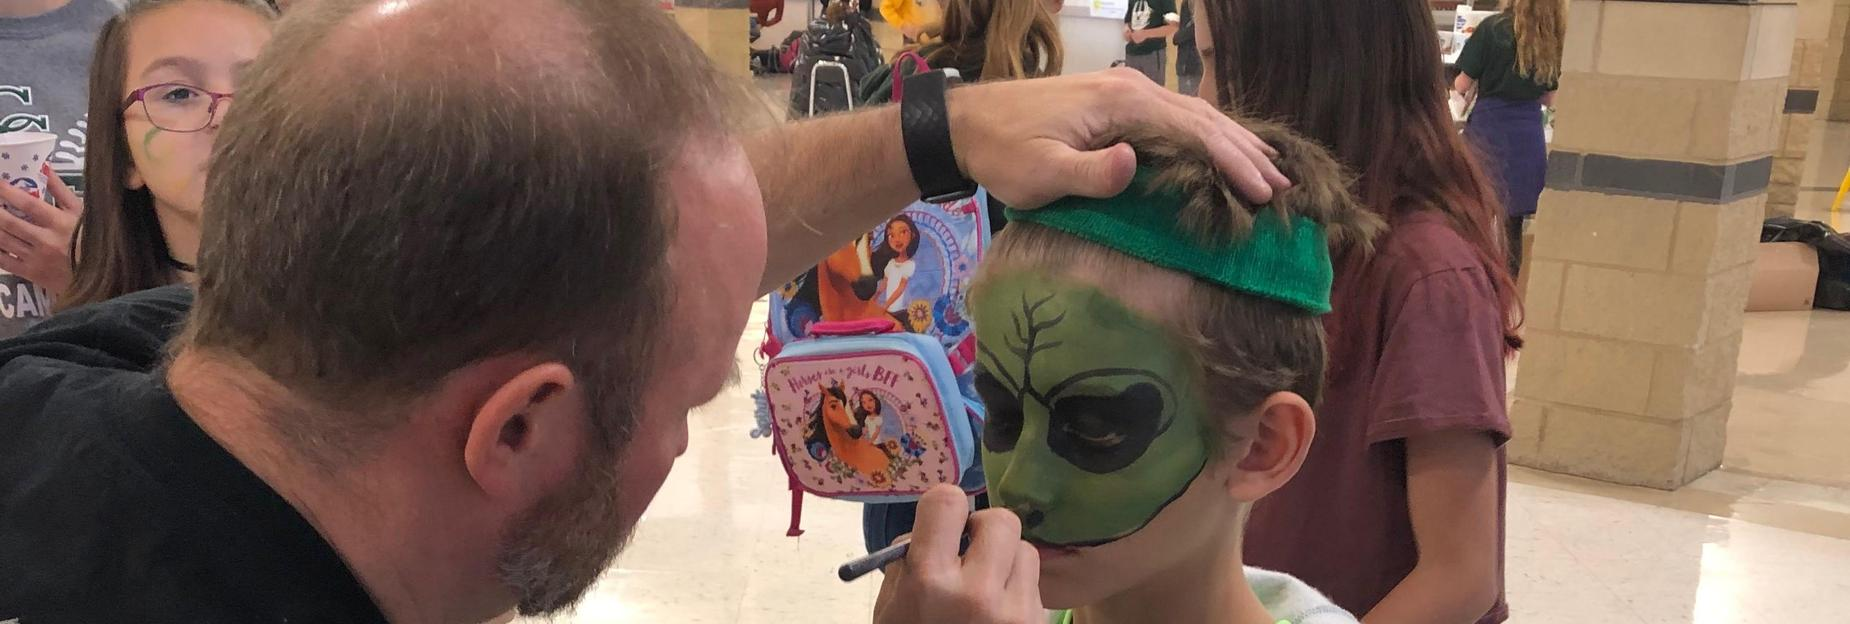 face painting at fundraiser